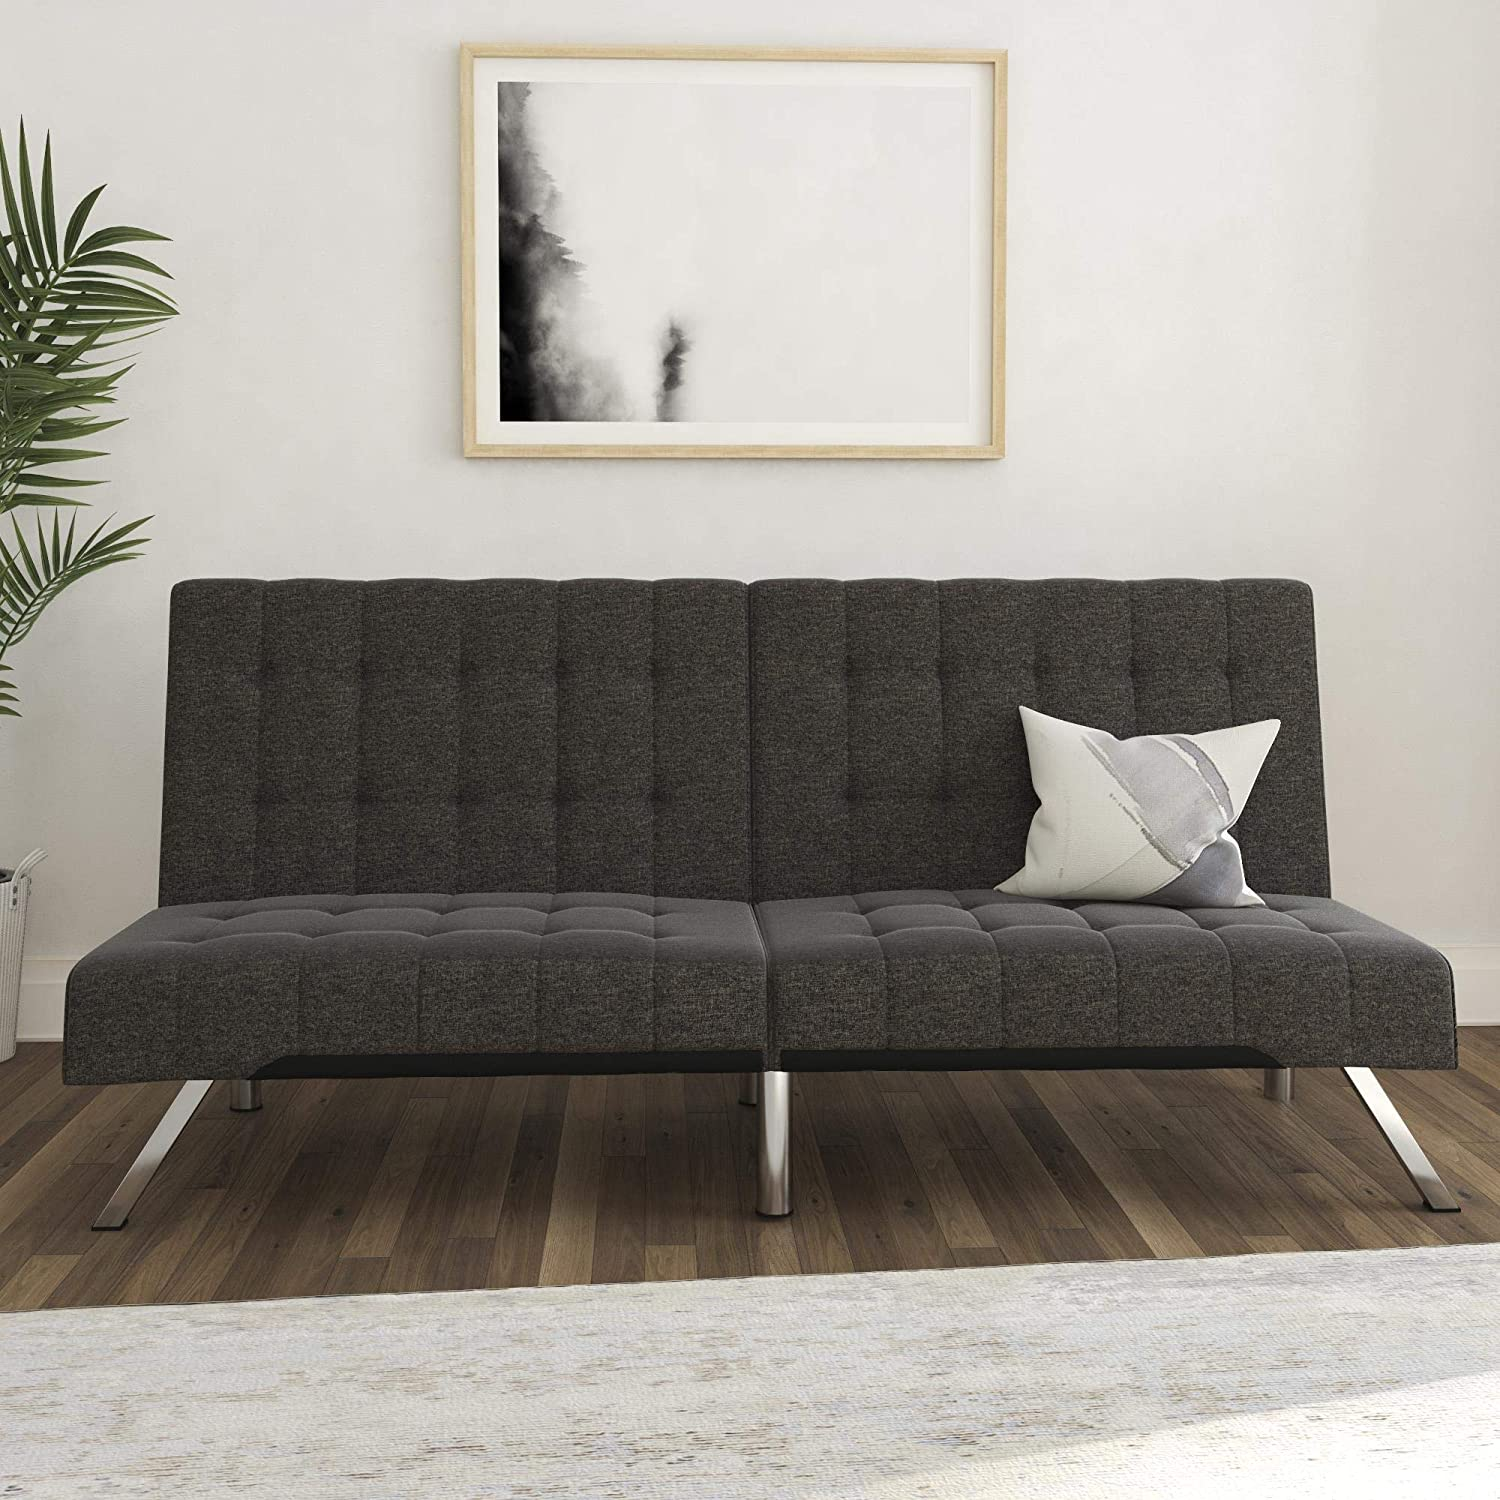 Top 8 Best Comfortable Sofa Beds for Daily Use [ Expert's Choice - 2021] 3